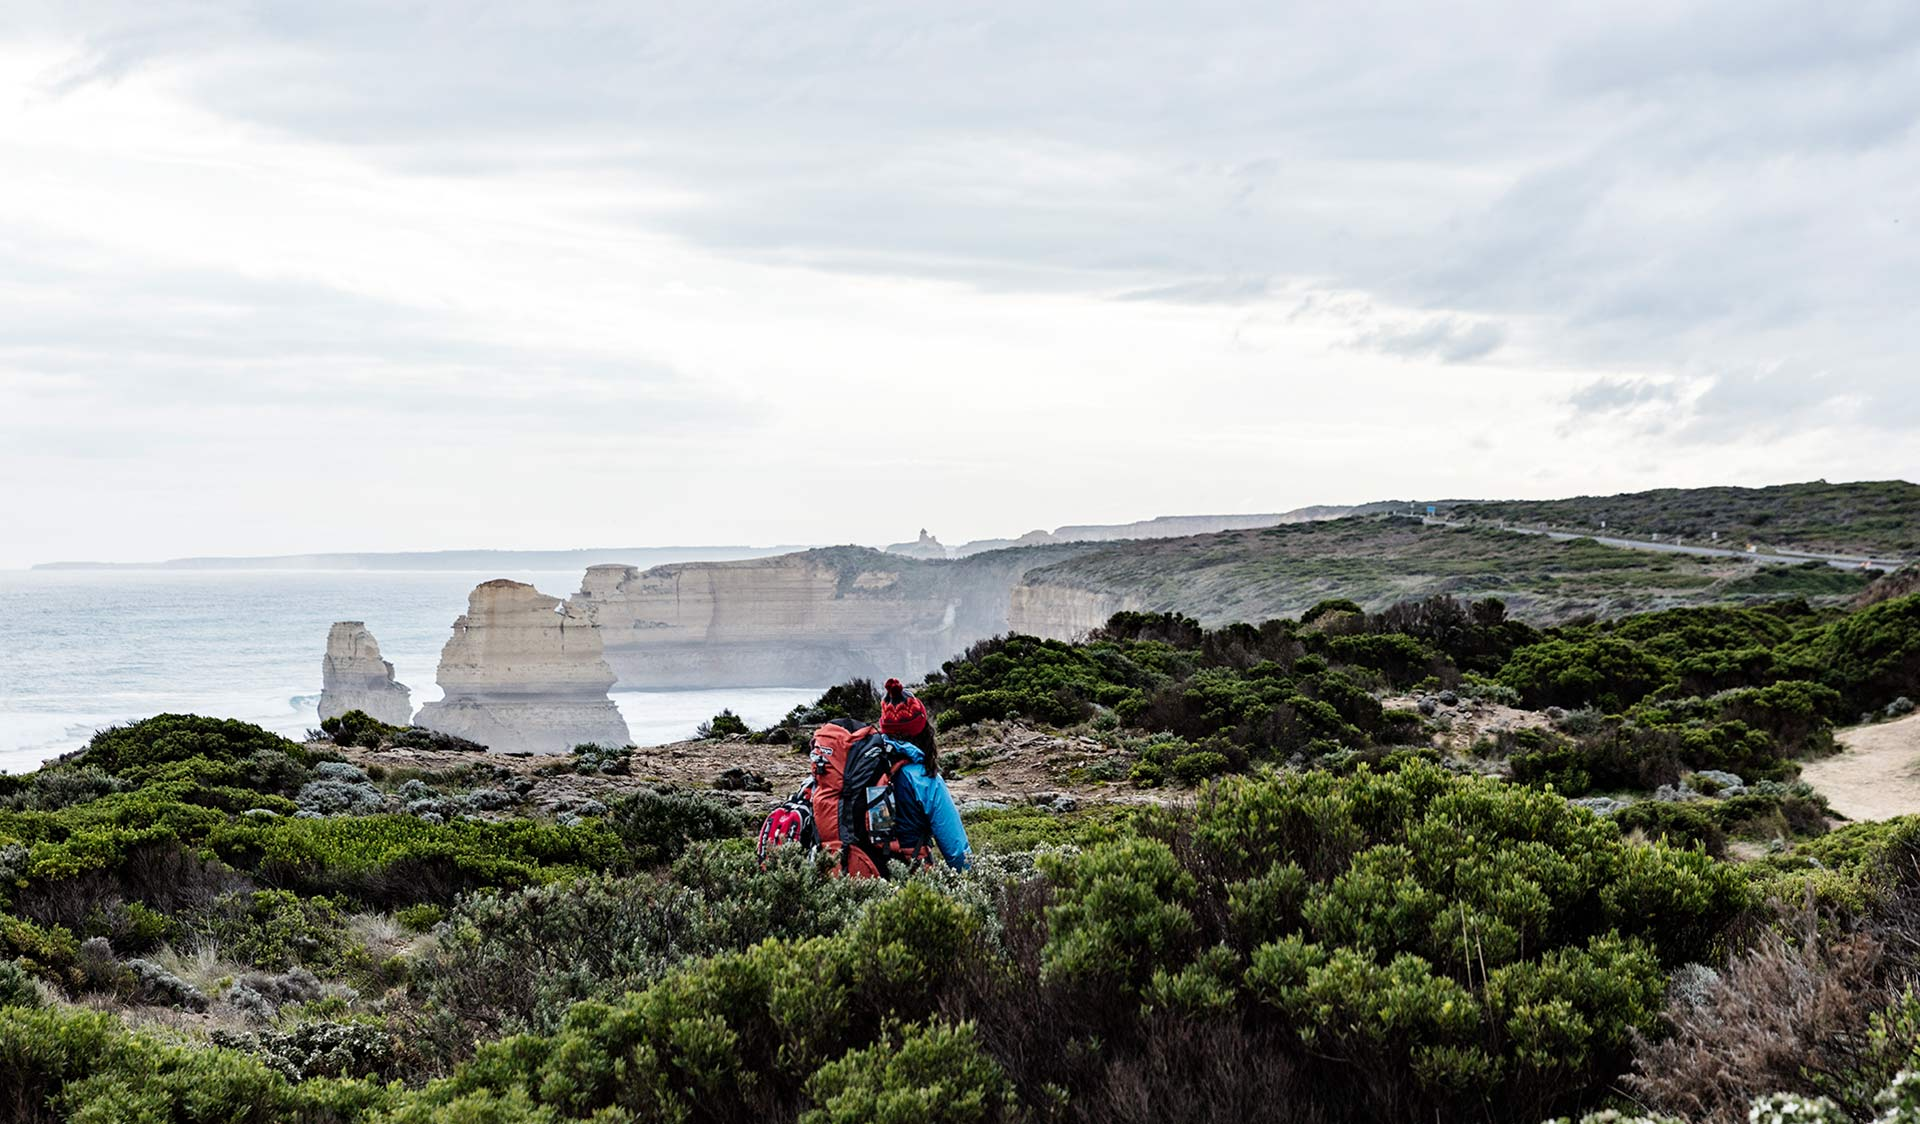 A women in a blue jacket walks through the heath on the cliffs above the Twelve Apostles.